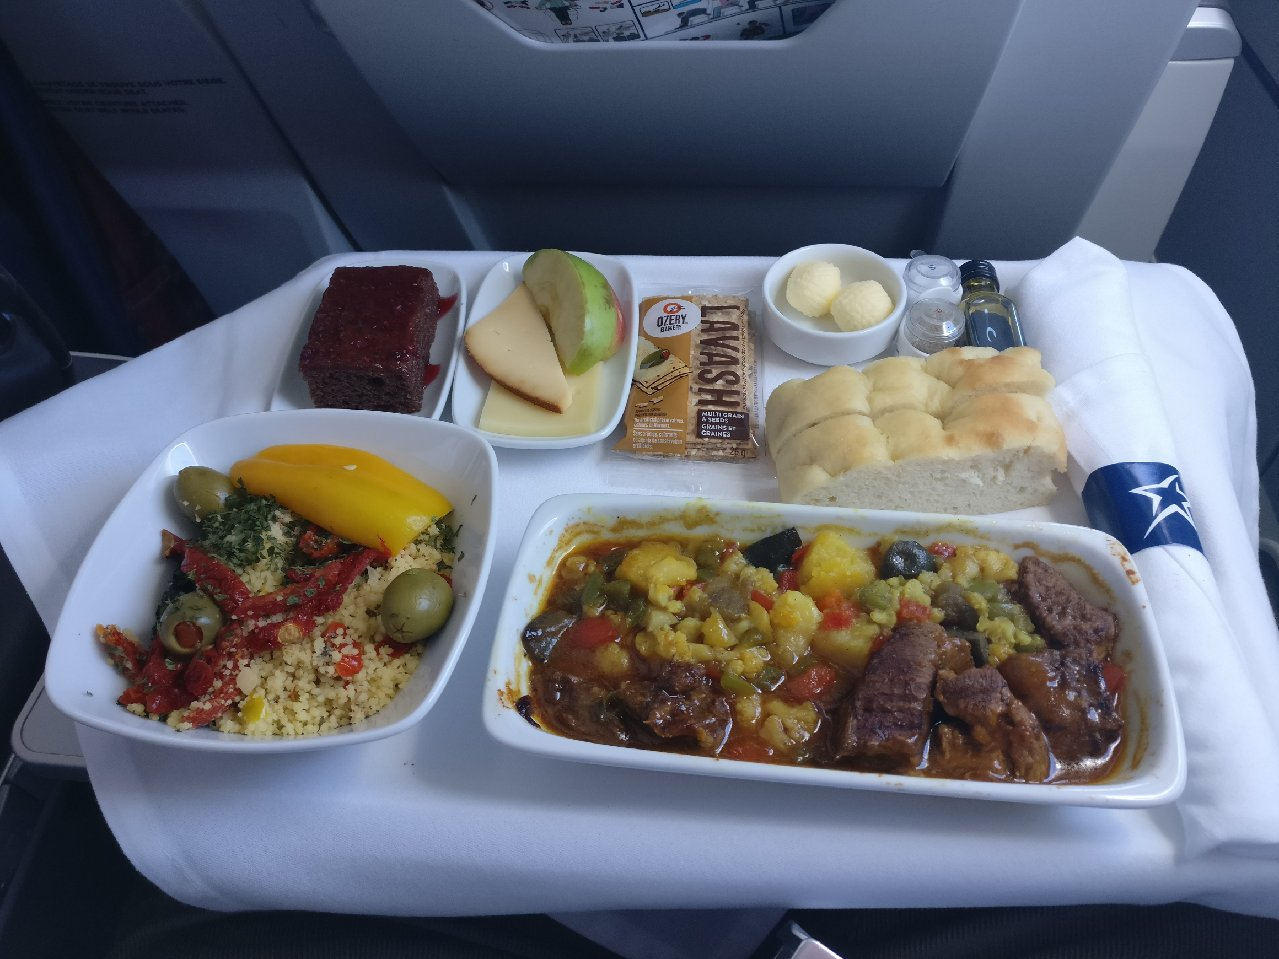 Air Transat meal